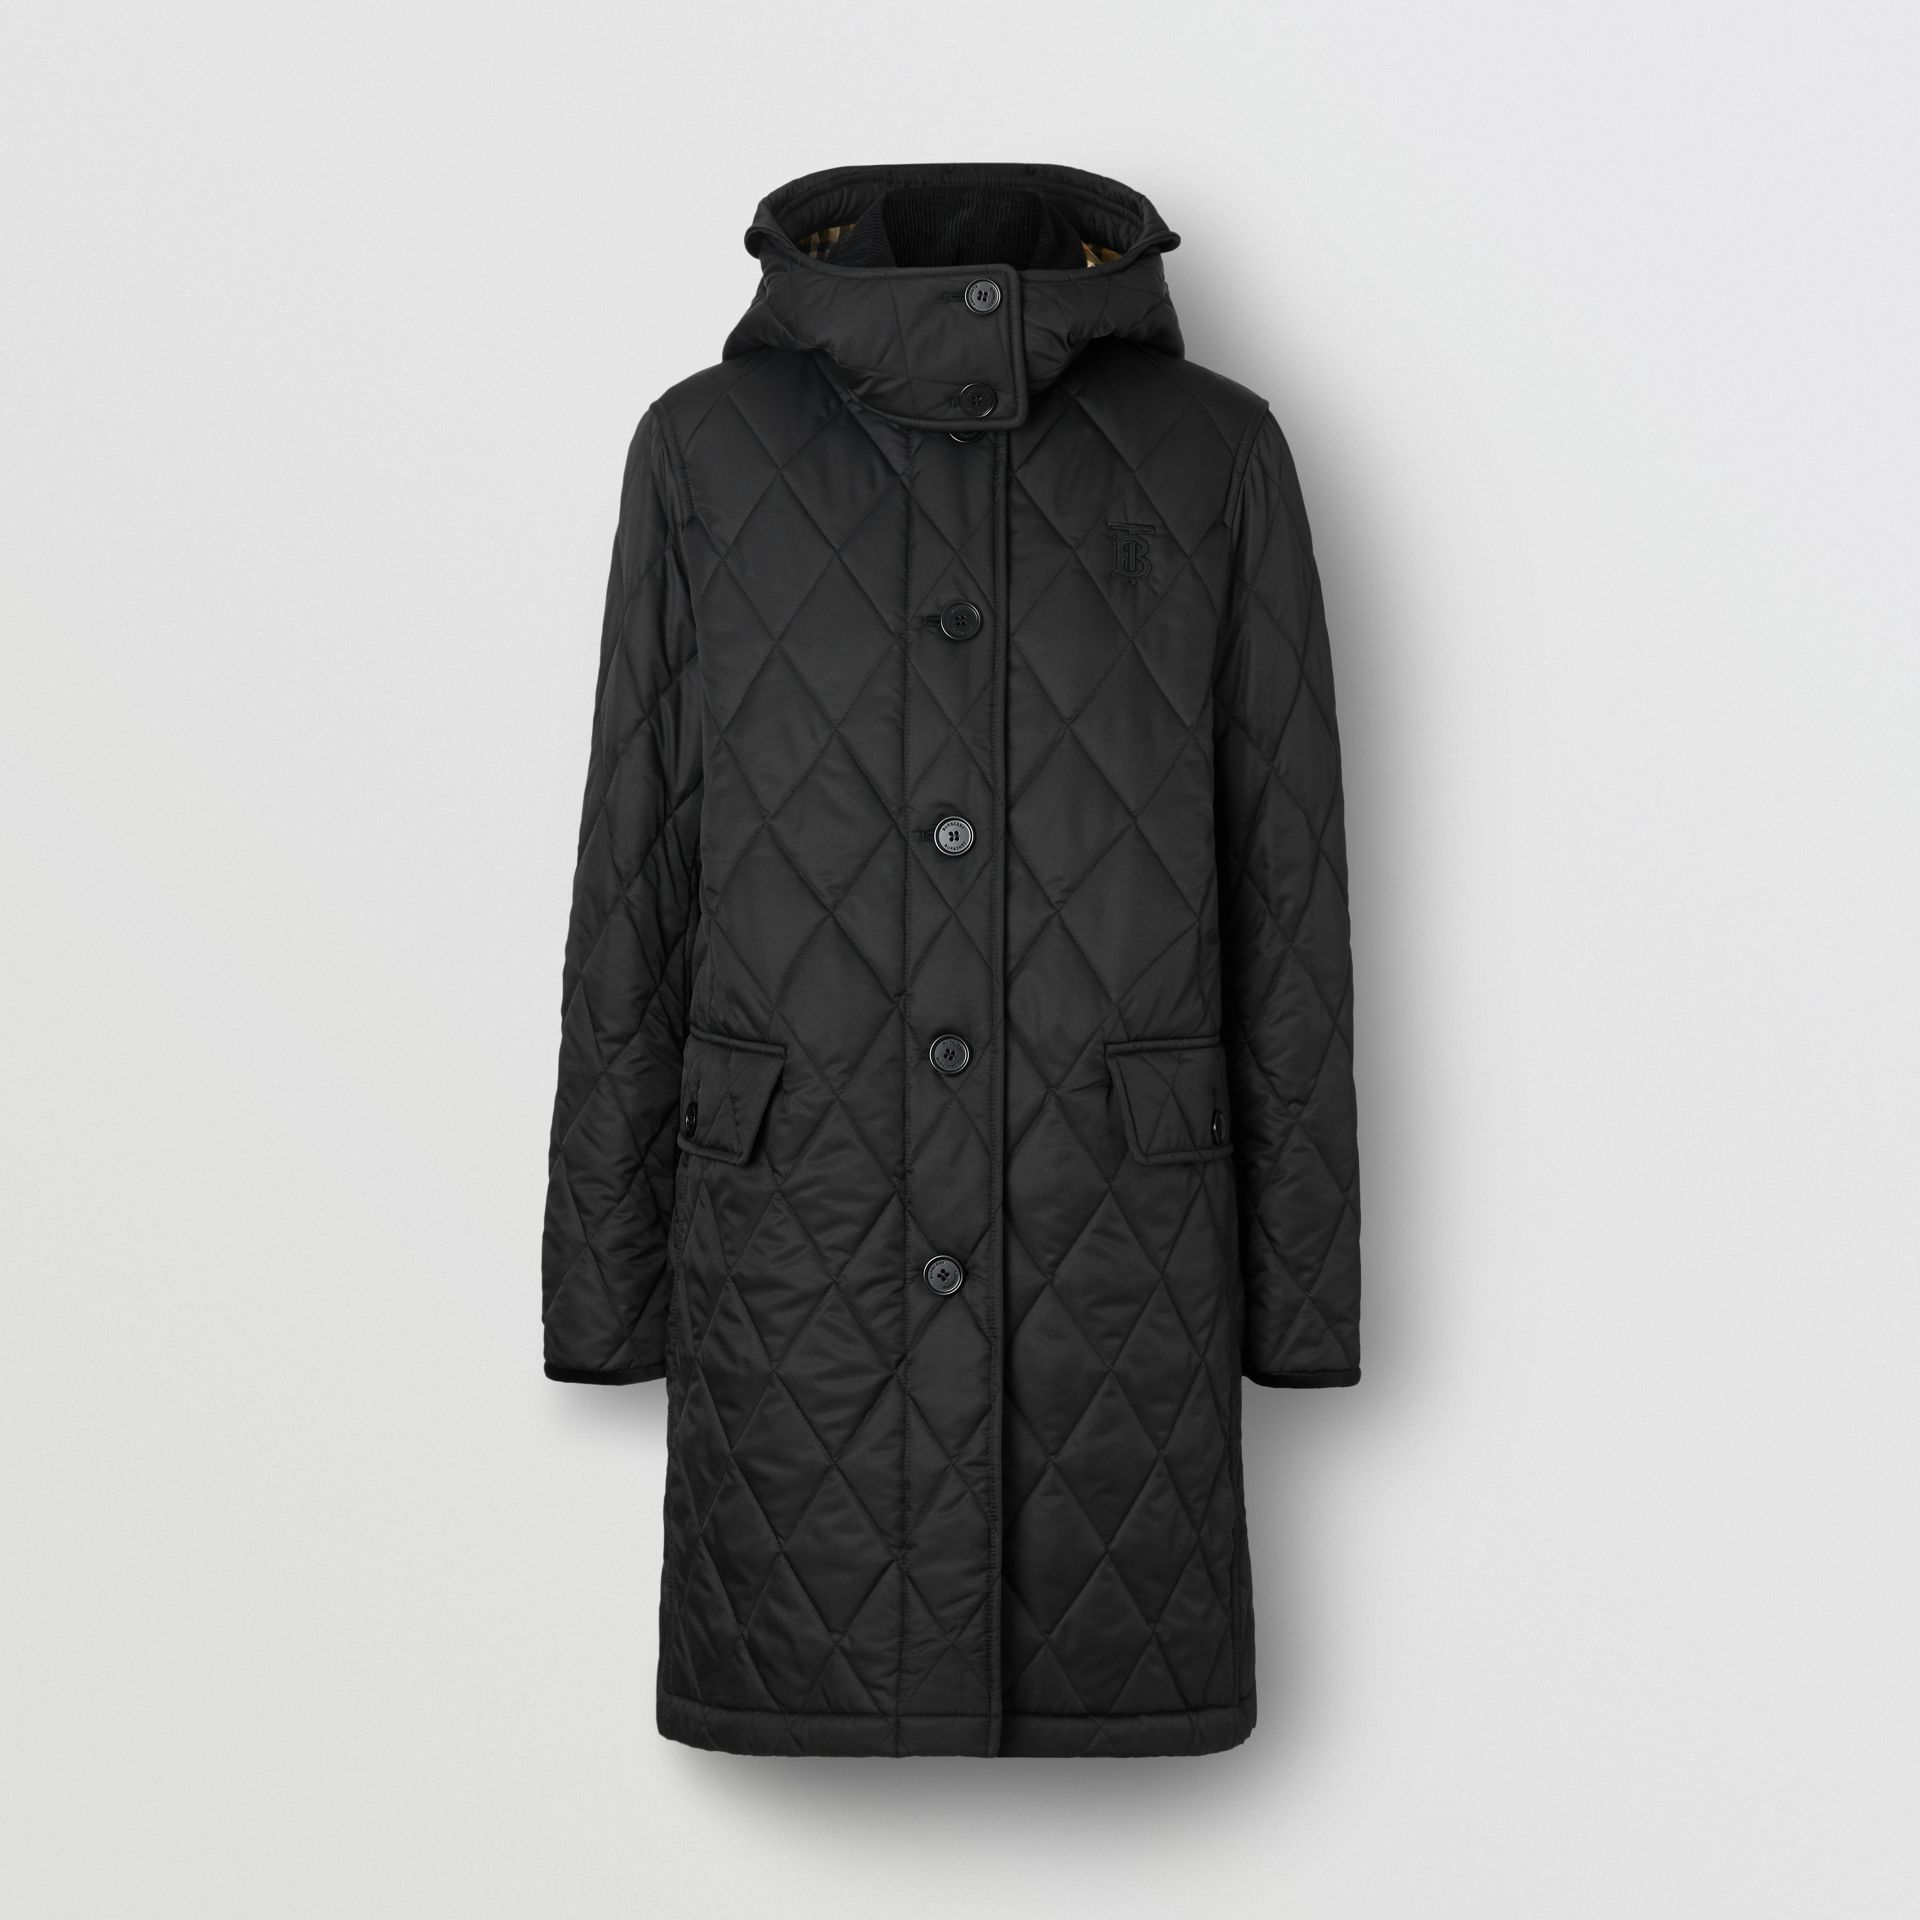 Detachable Hood Monogram Motif Quilted Coat in Black - Women | Burberry - gallery image 3